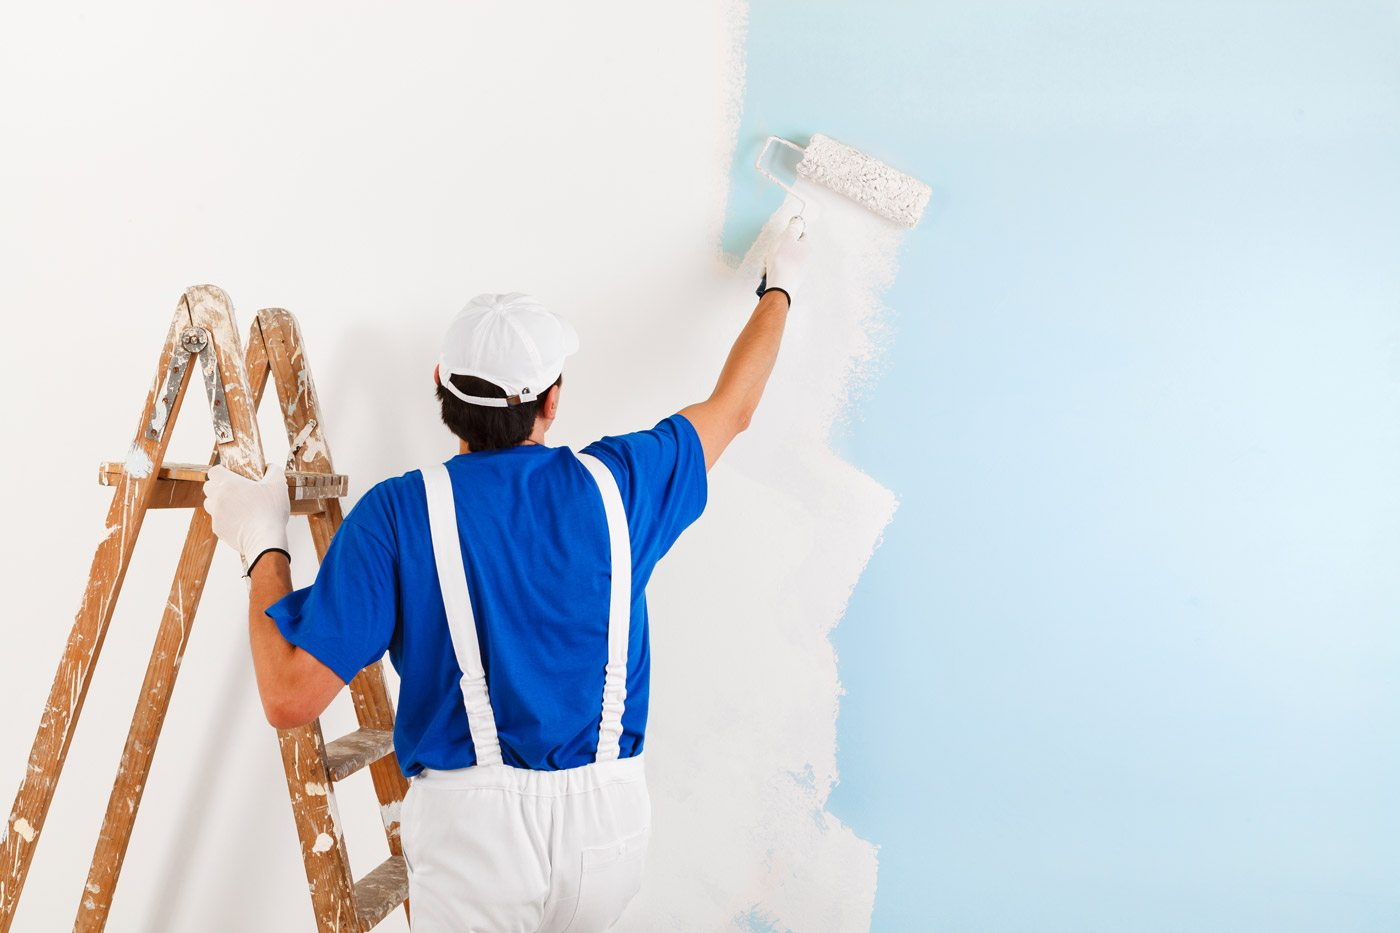 Contact Us-Victoria TX Professional Painting Contractors-We offer Residential & Commercial Painting, Interior Painting, Exterior Painting, Primer Painting, Industrial Painting, Professional Painters, Institutional Painters, and more.